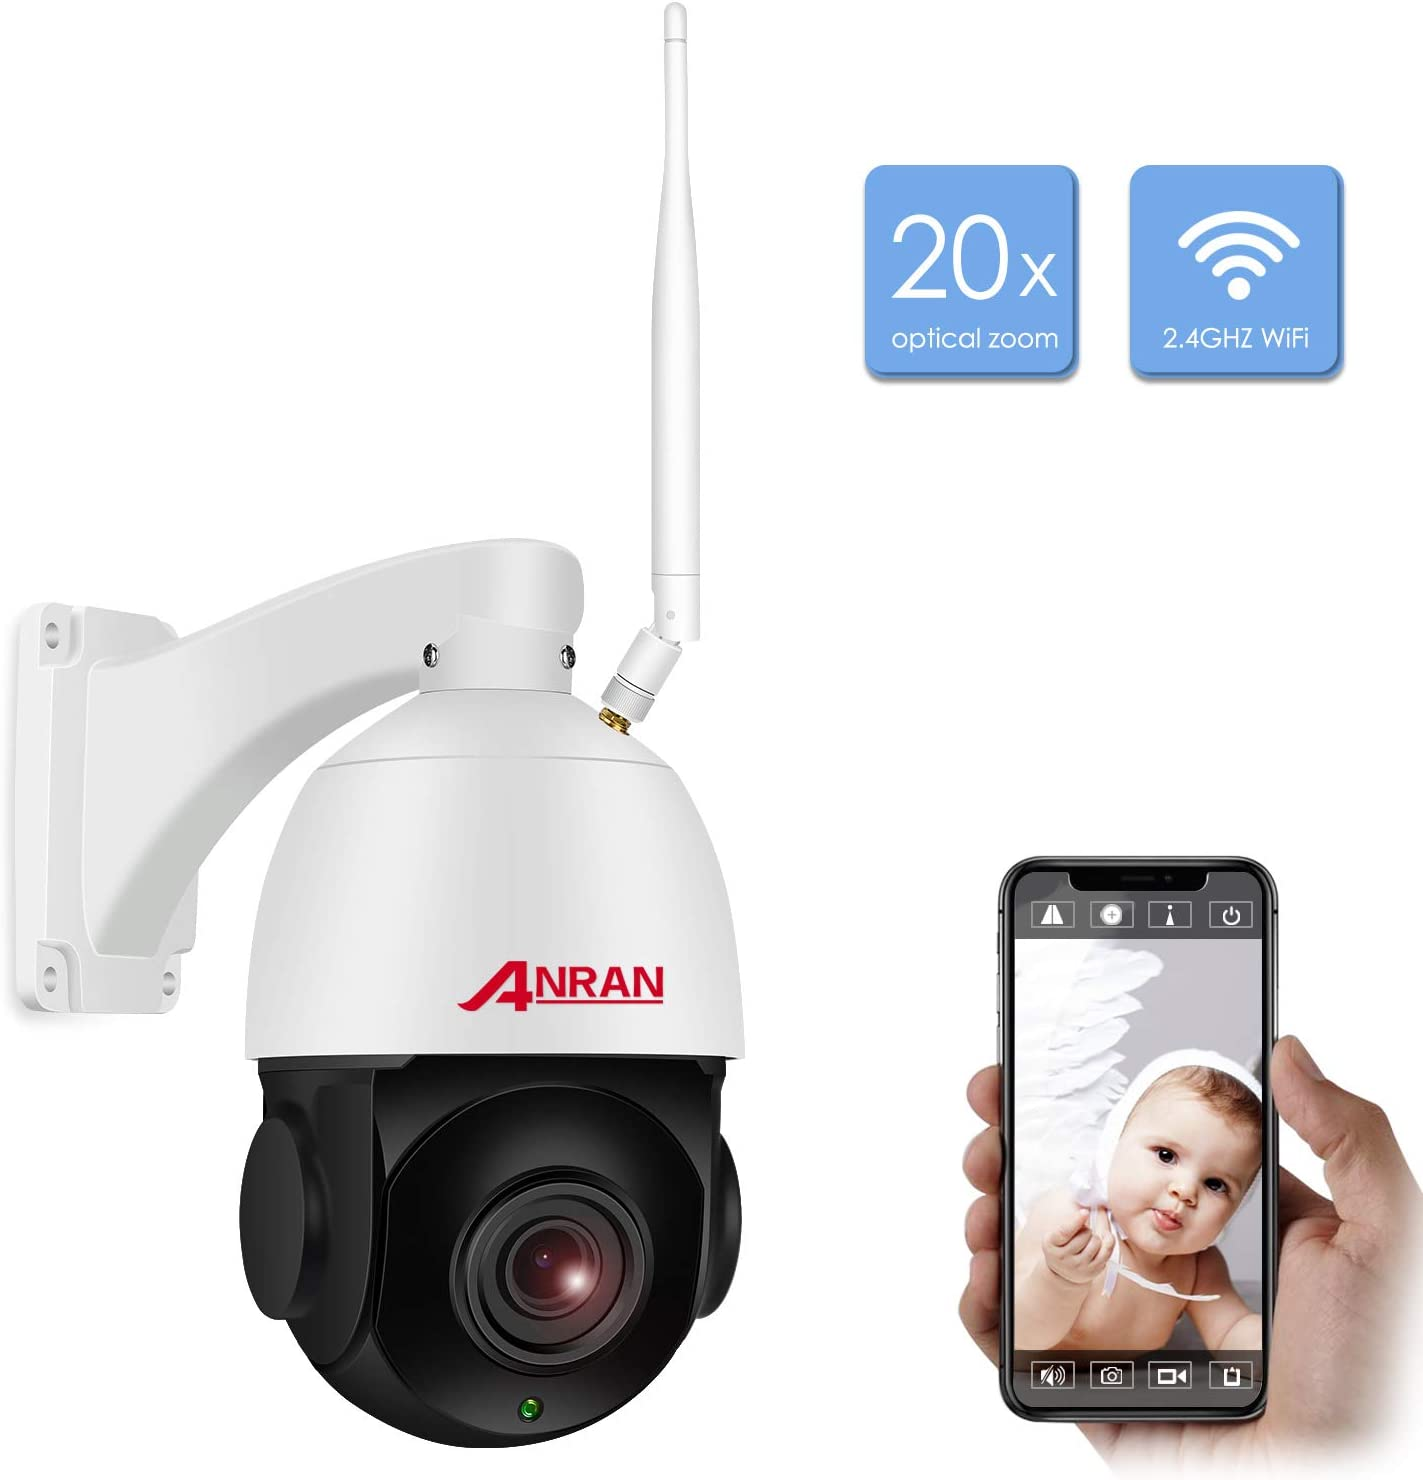 1080P PTZ WiFi Security Home Outdoor Camera,Wireless CCTV IP Surveillance Pan Tilt 20X Optical High Speed Zoom Dome Camera with 32GB SD Card Two Way Audio,98ft Night Vision,Motion Detection ANRAN